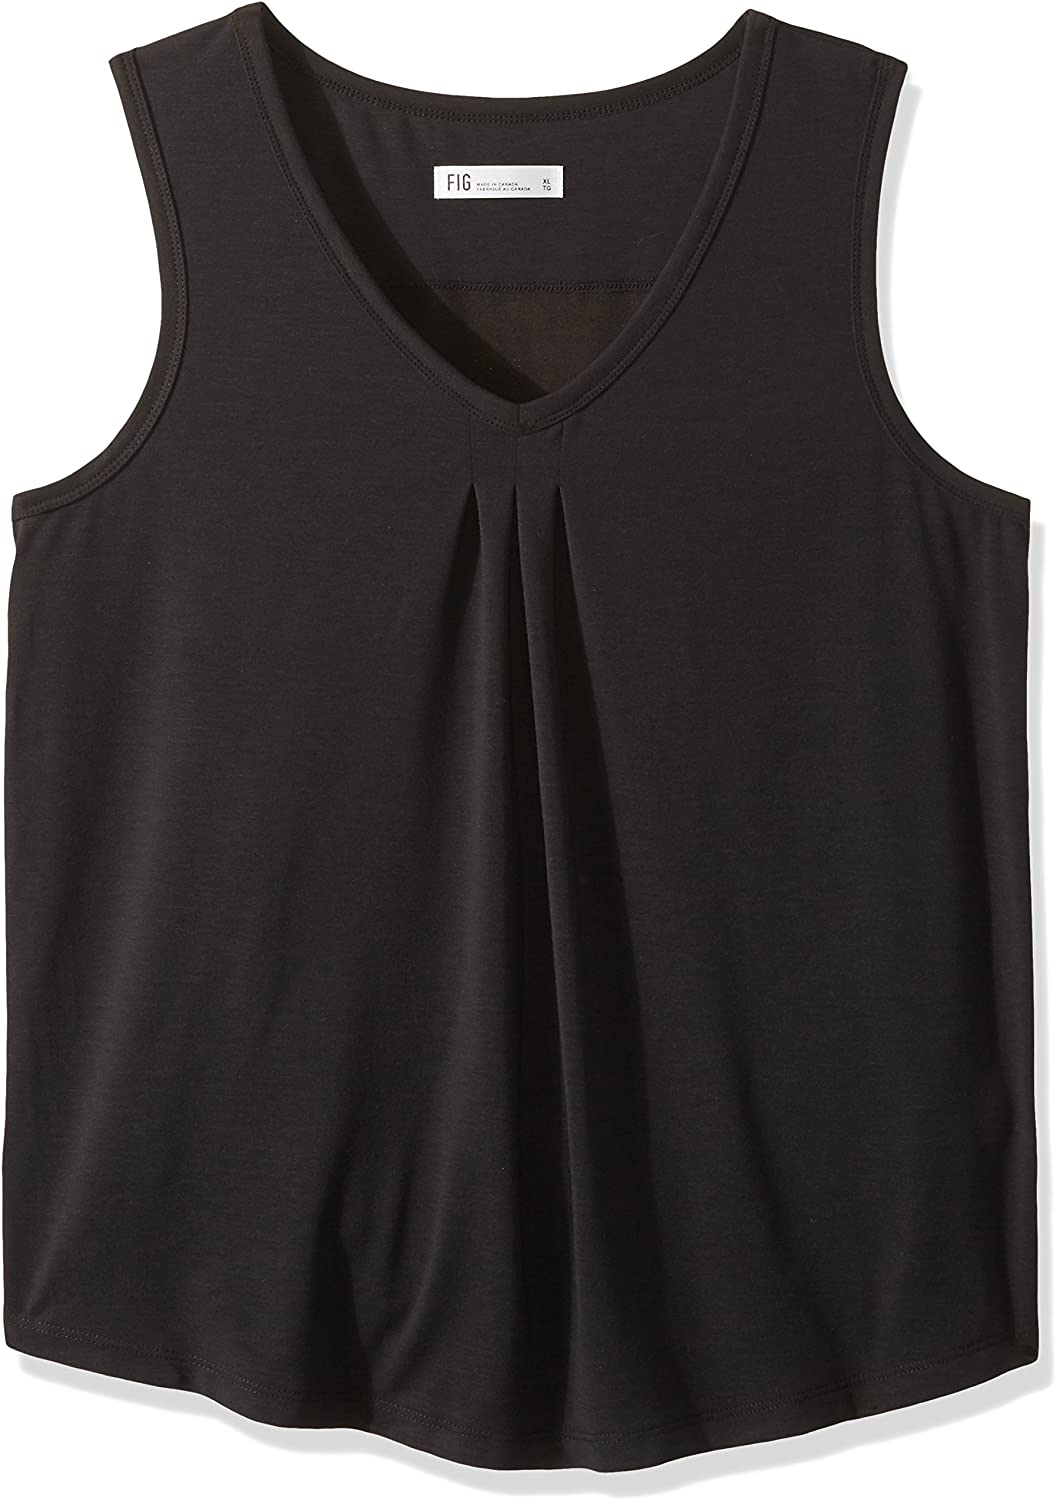 FIG Women's Coz Limited time sale top safety Black